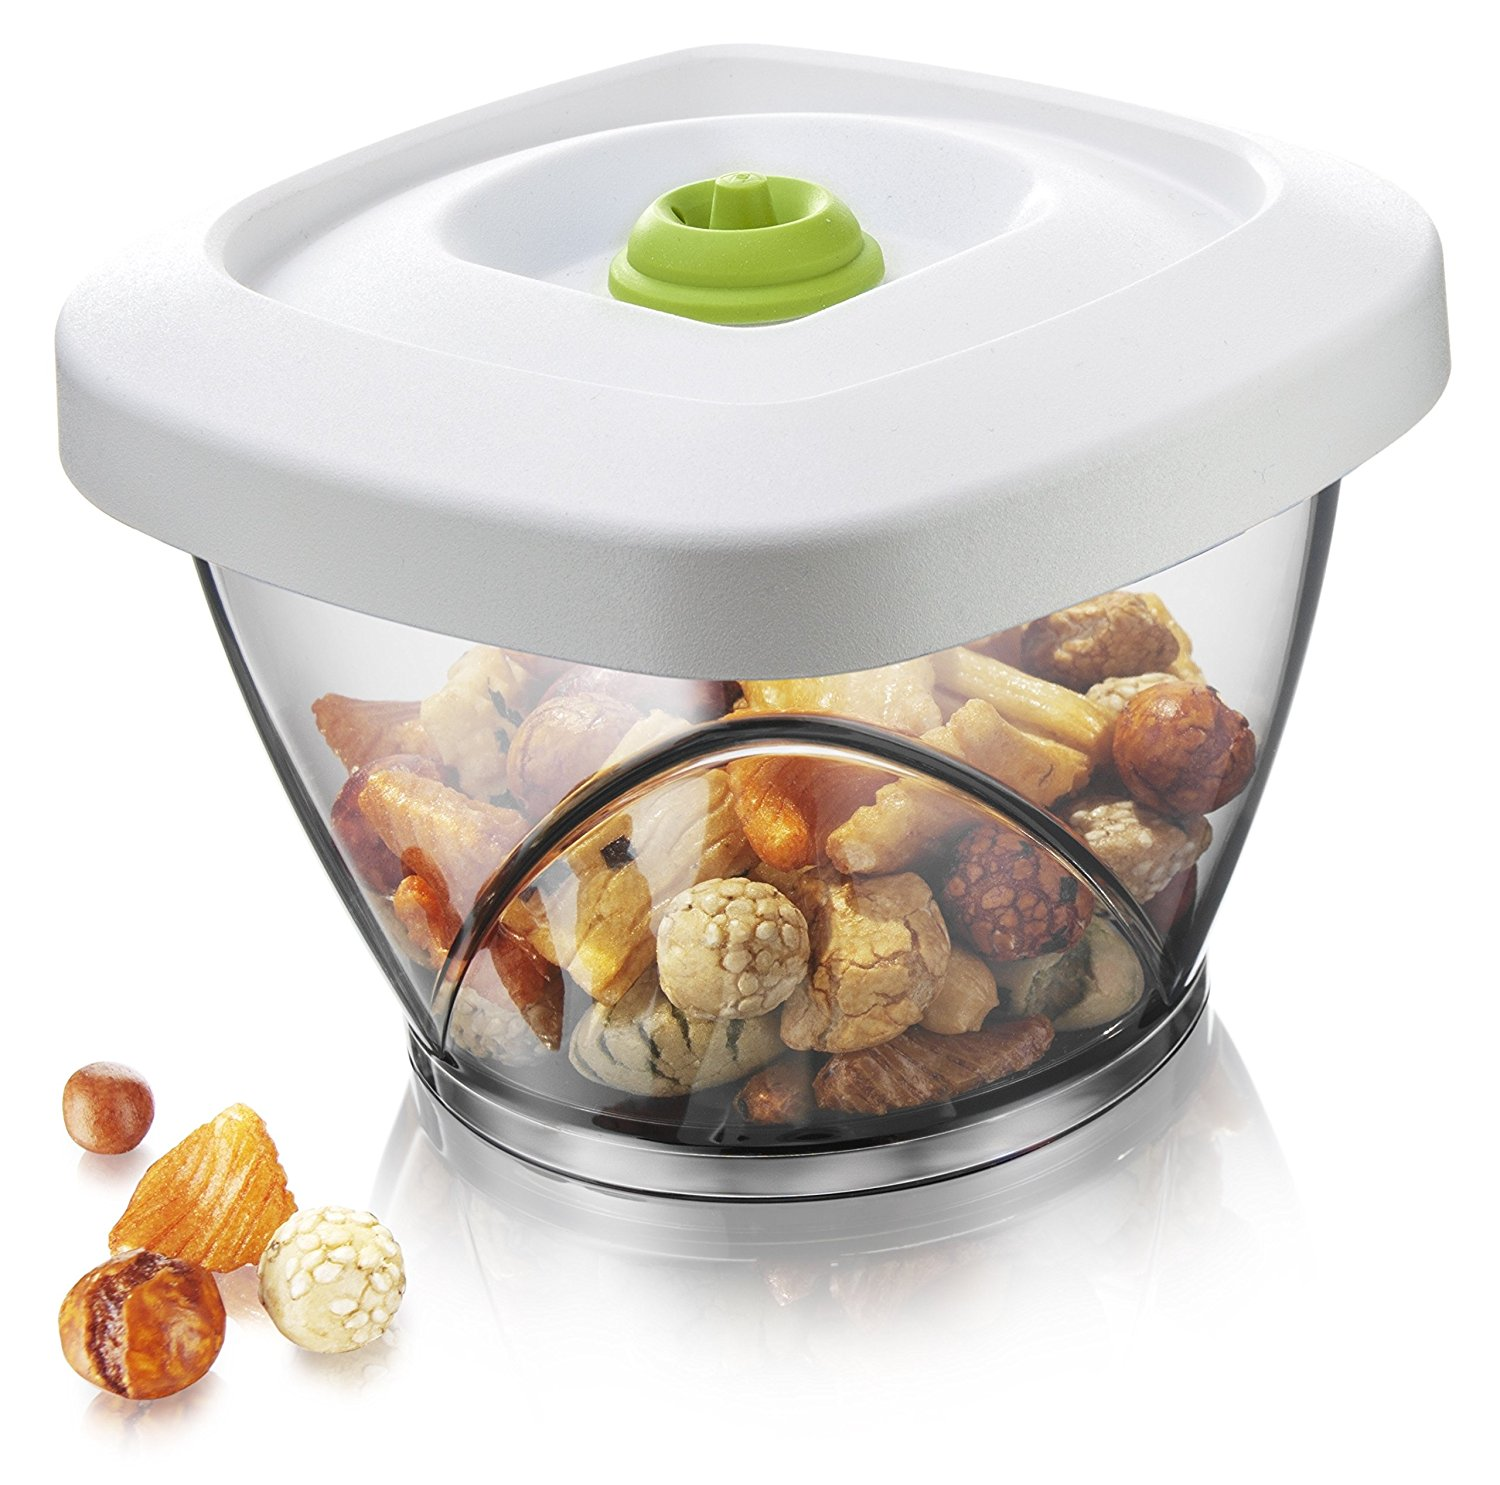 Tomorrowu0027s Kitchen Small Vacuum Storage Container Small .65 Liter Vacuum Sealed Container (Pump not included) By Tomorrows Kitchen - Walmart.com  sc 1 st  Walmart & Tomorrowu0027s Kitchen Small Vacuum Storage Container Small .65 Liter ...